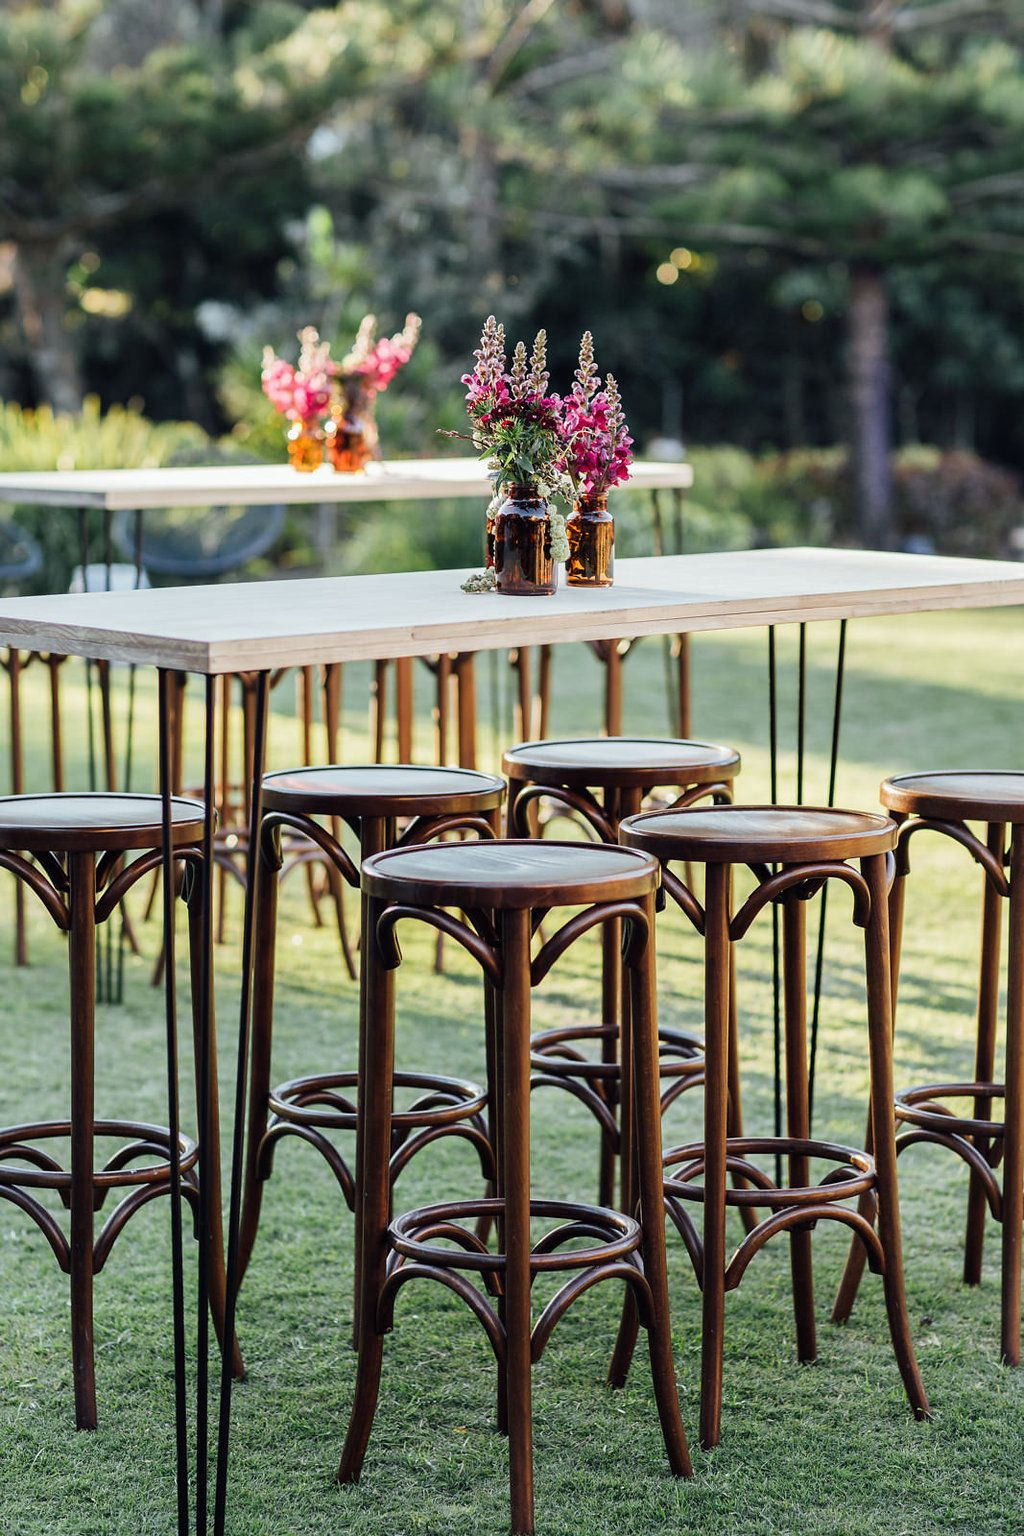 Hampton event hire black hairpin leg dry bar walnut bentwood we are luxury event hire company working throughout brisbane gold coast tweed coast byron bay and surrounds we offer the highest quality and latest junglespirit Images